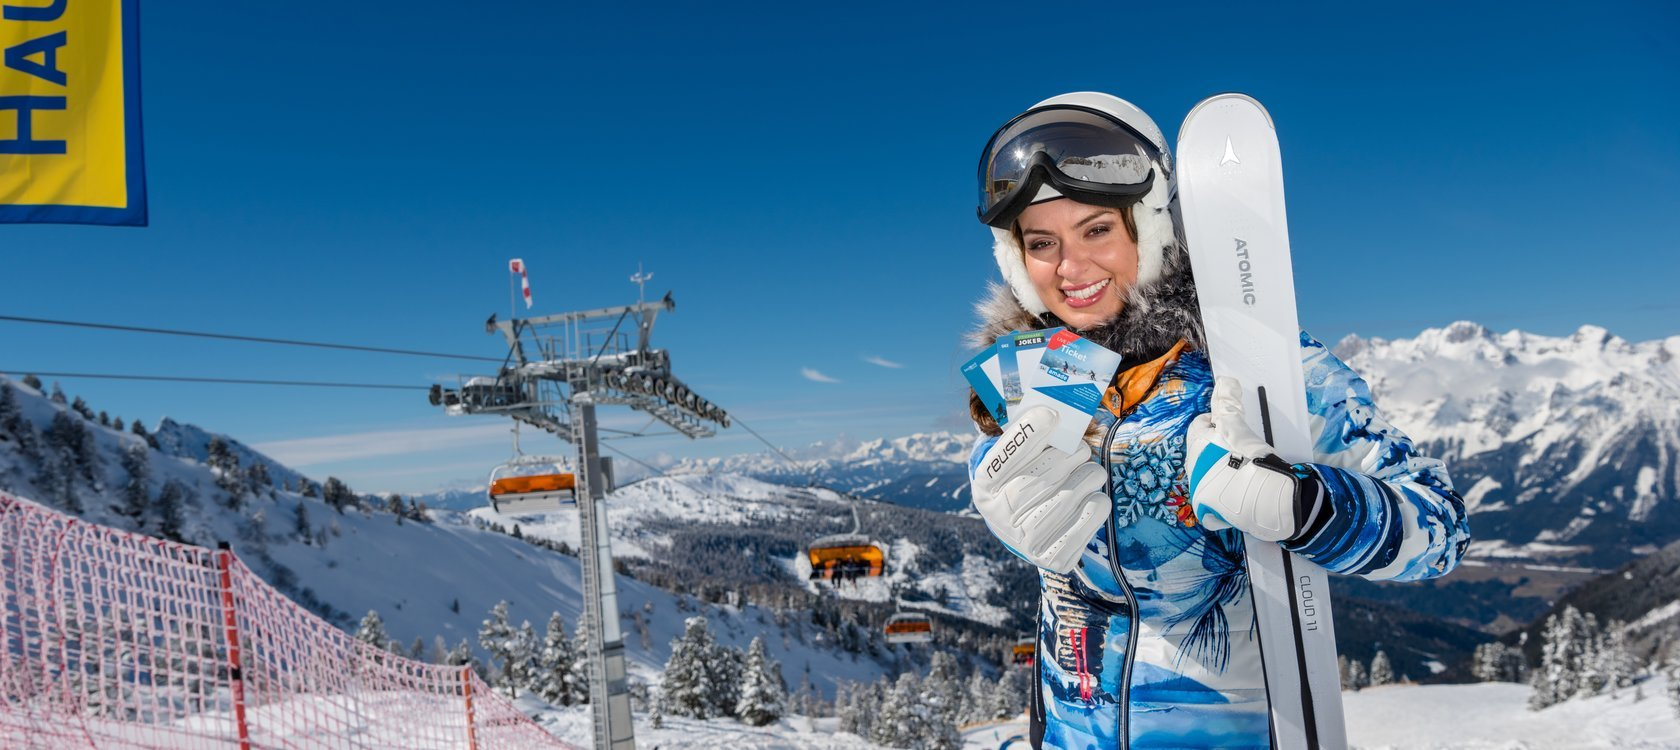 Season ticket Ski amade - Order ski pass online and enjoy your skiing day.